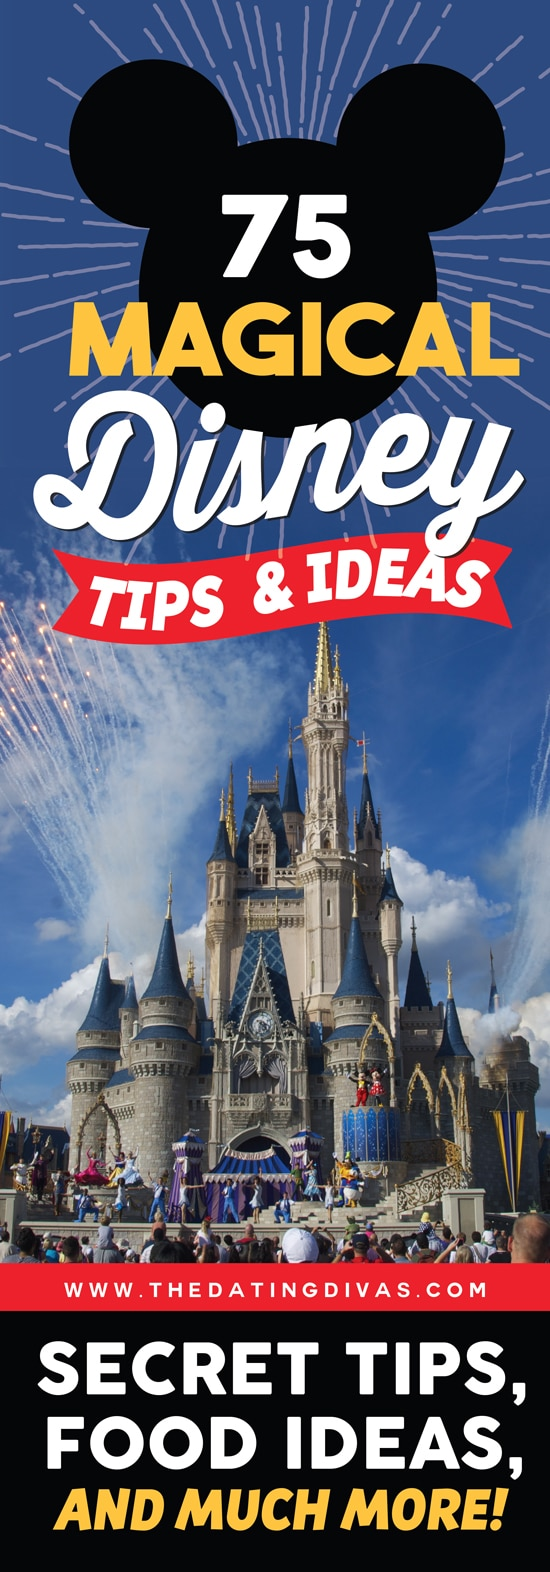 The ULTIMATE list of 75 Magical Disney Tips and Ideas! Tons of secret tips, hacks, and celebration ideas like cute Disney shirts to get you psyched for your upcoming Disney trip! We have put together 75 Disney tips you can't live without... Not only that, we've got Disney World tips, too! #DisneyTips #DisneyWorldTips #TheDatingDivas